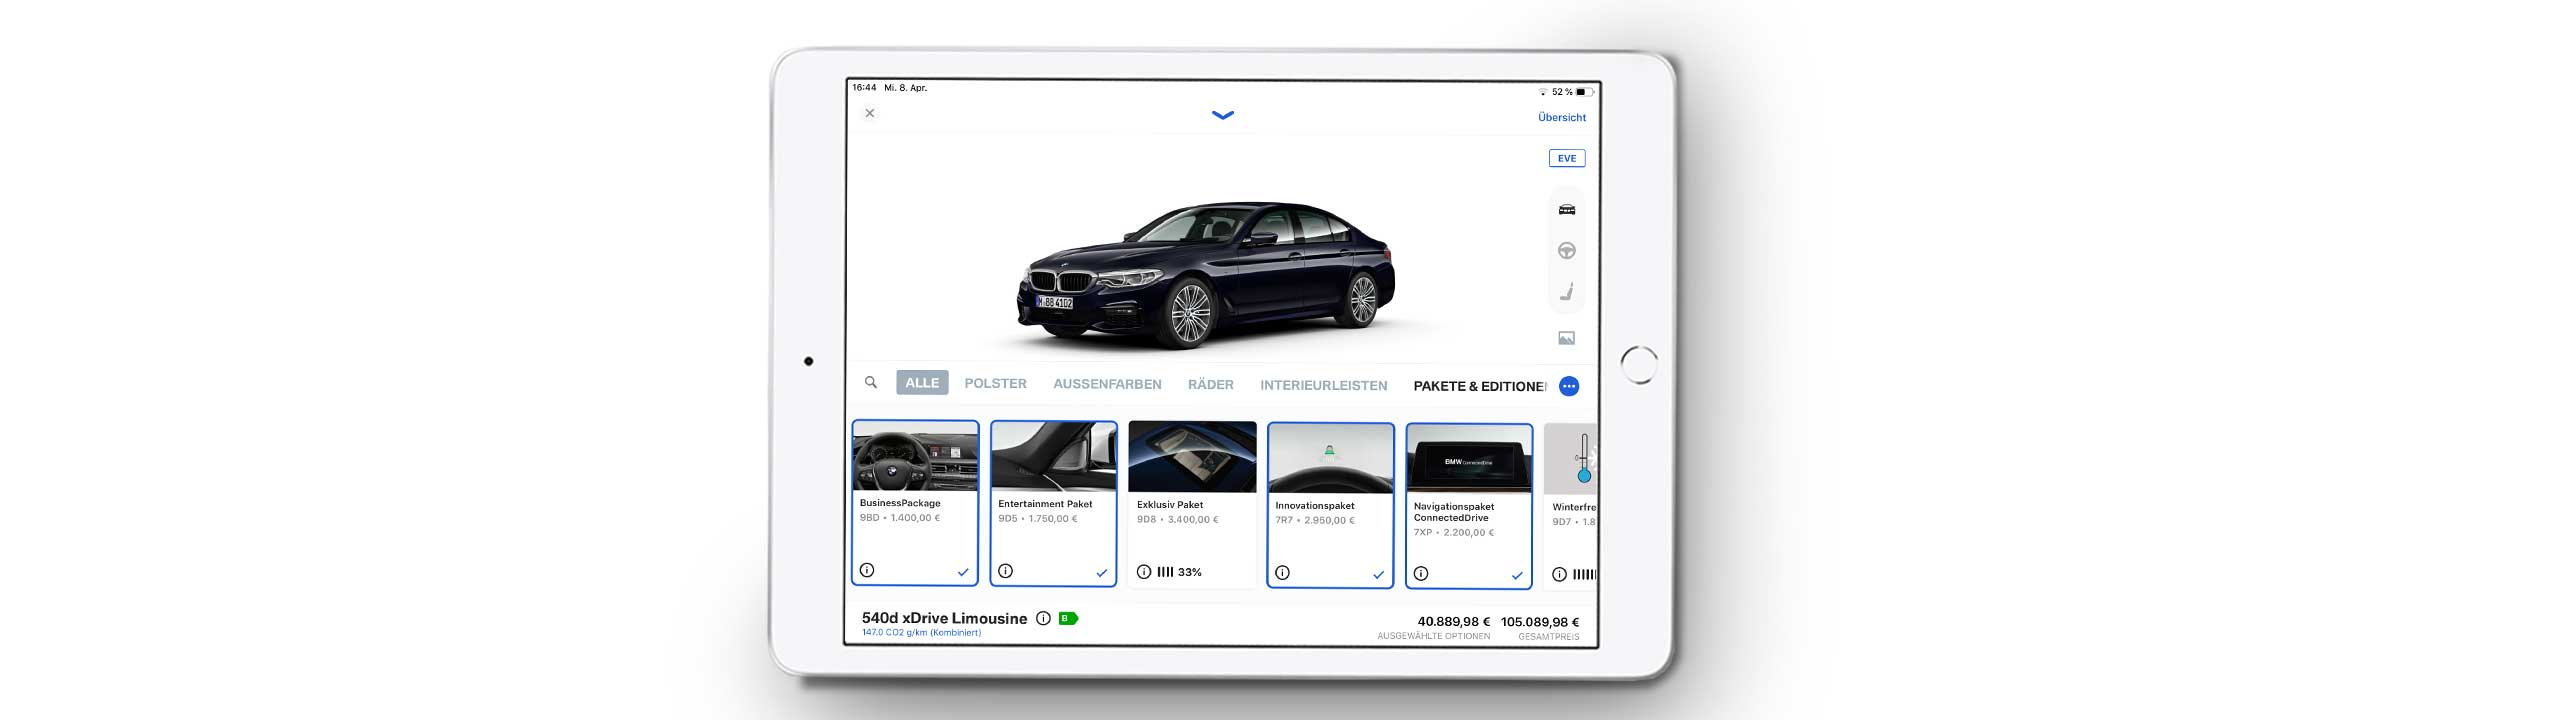 BMW Customizer Screenshot in iPad